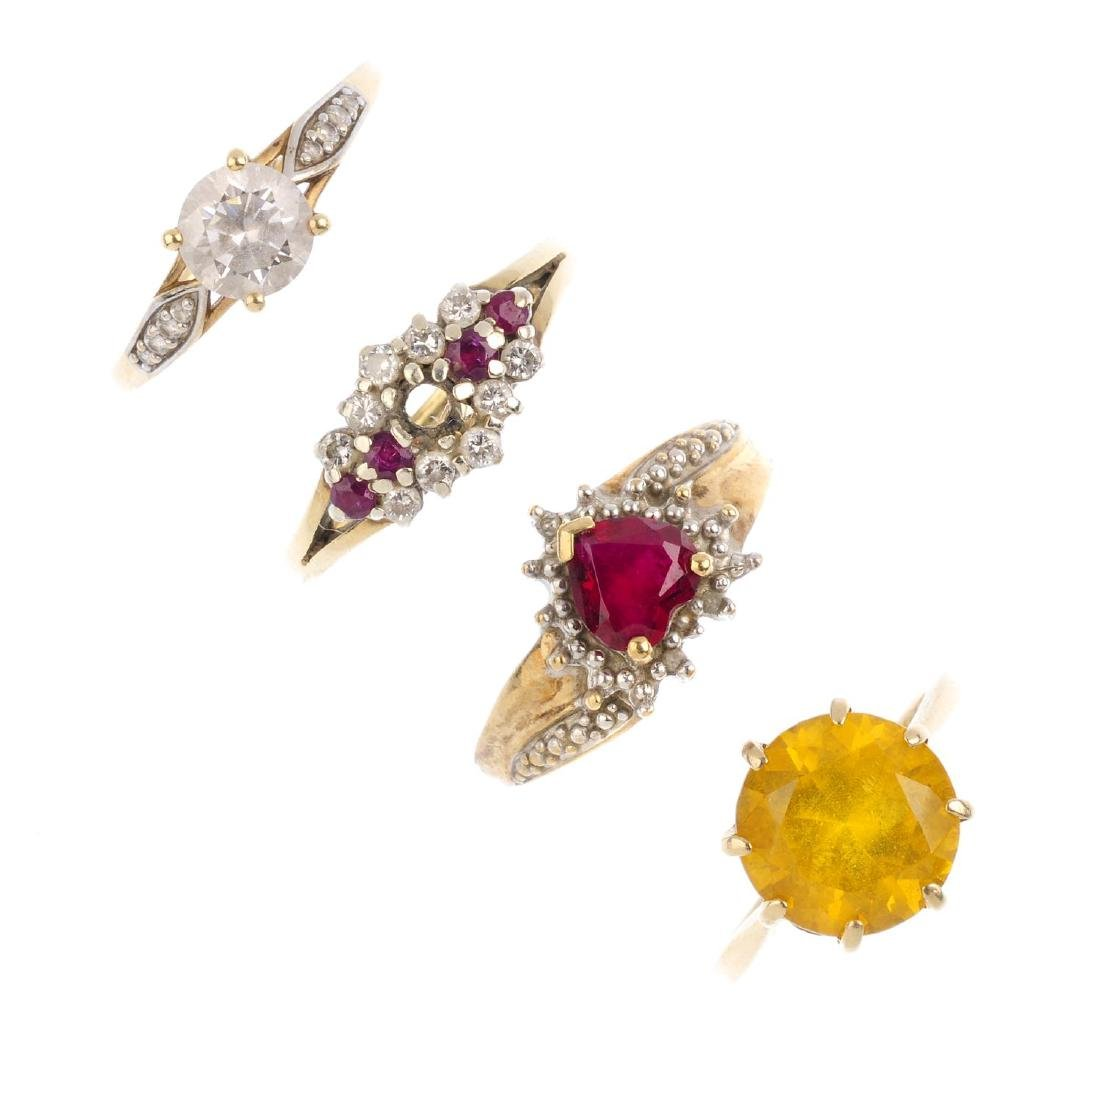 Four 9ct gold gem-set rings. To include a citrine